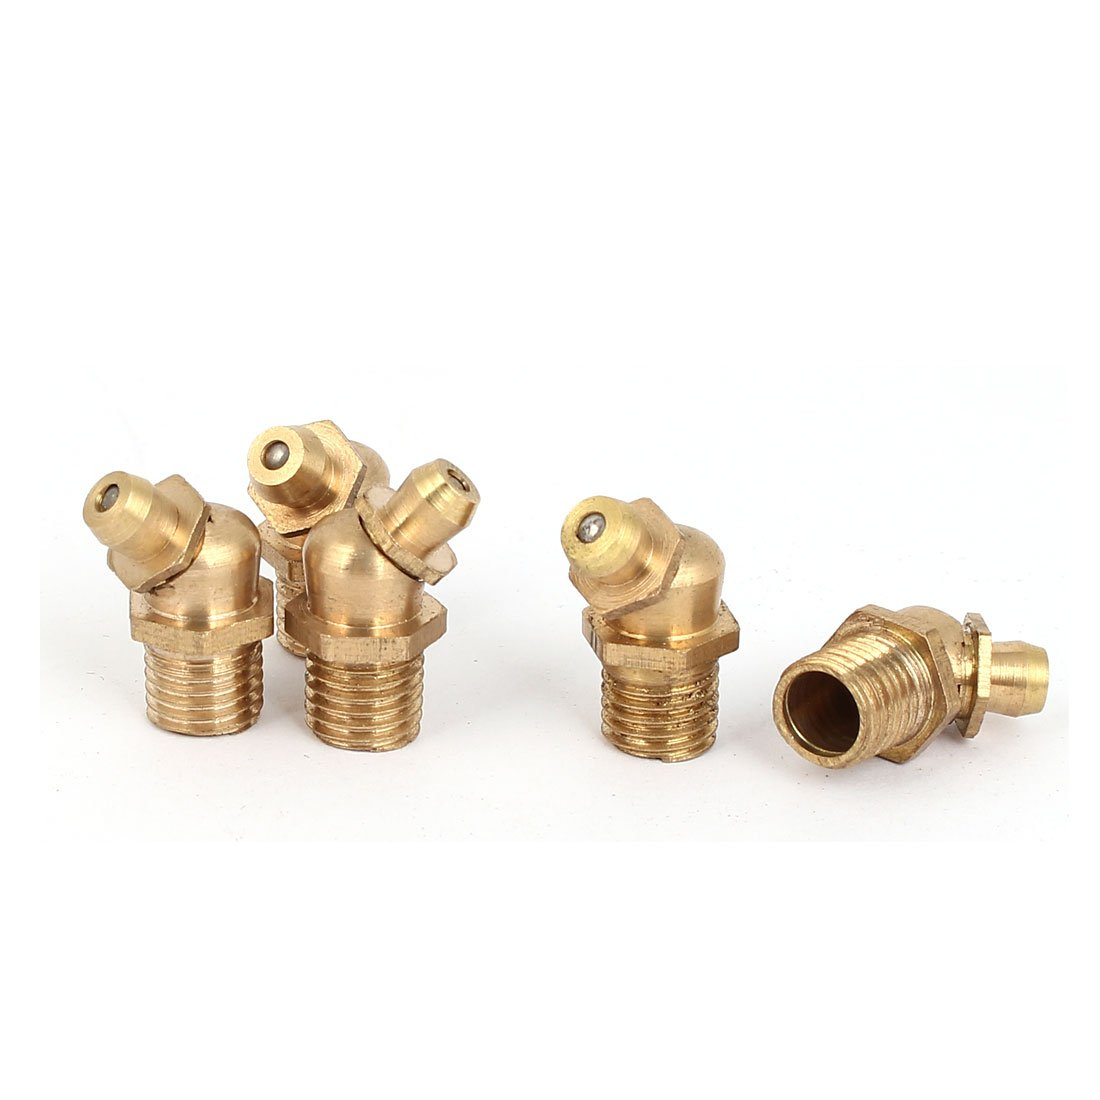 uxcell M8 Male Thread 1.0mm Pitch 45 Degree Brass Grease Nipple Fittings 5 Pcs a16040100ux0172